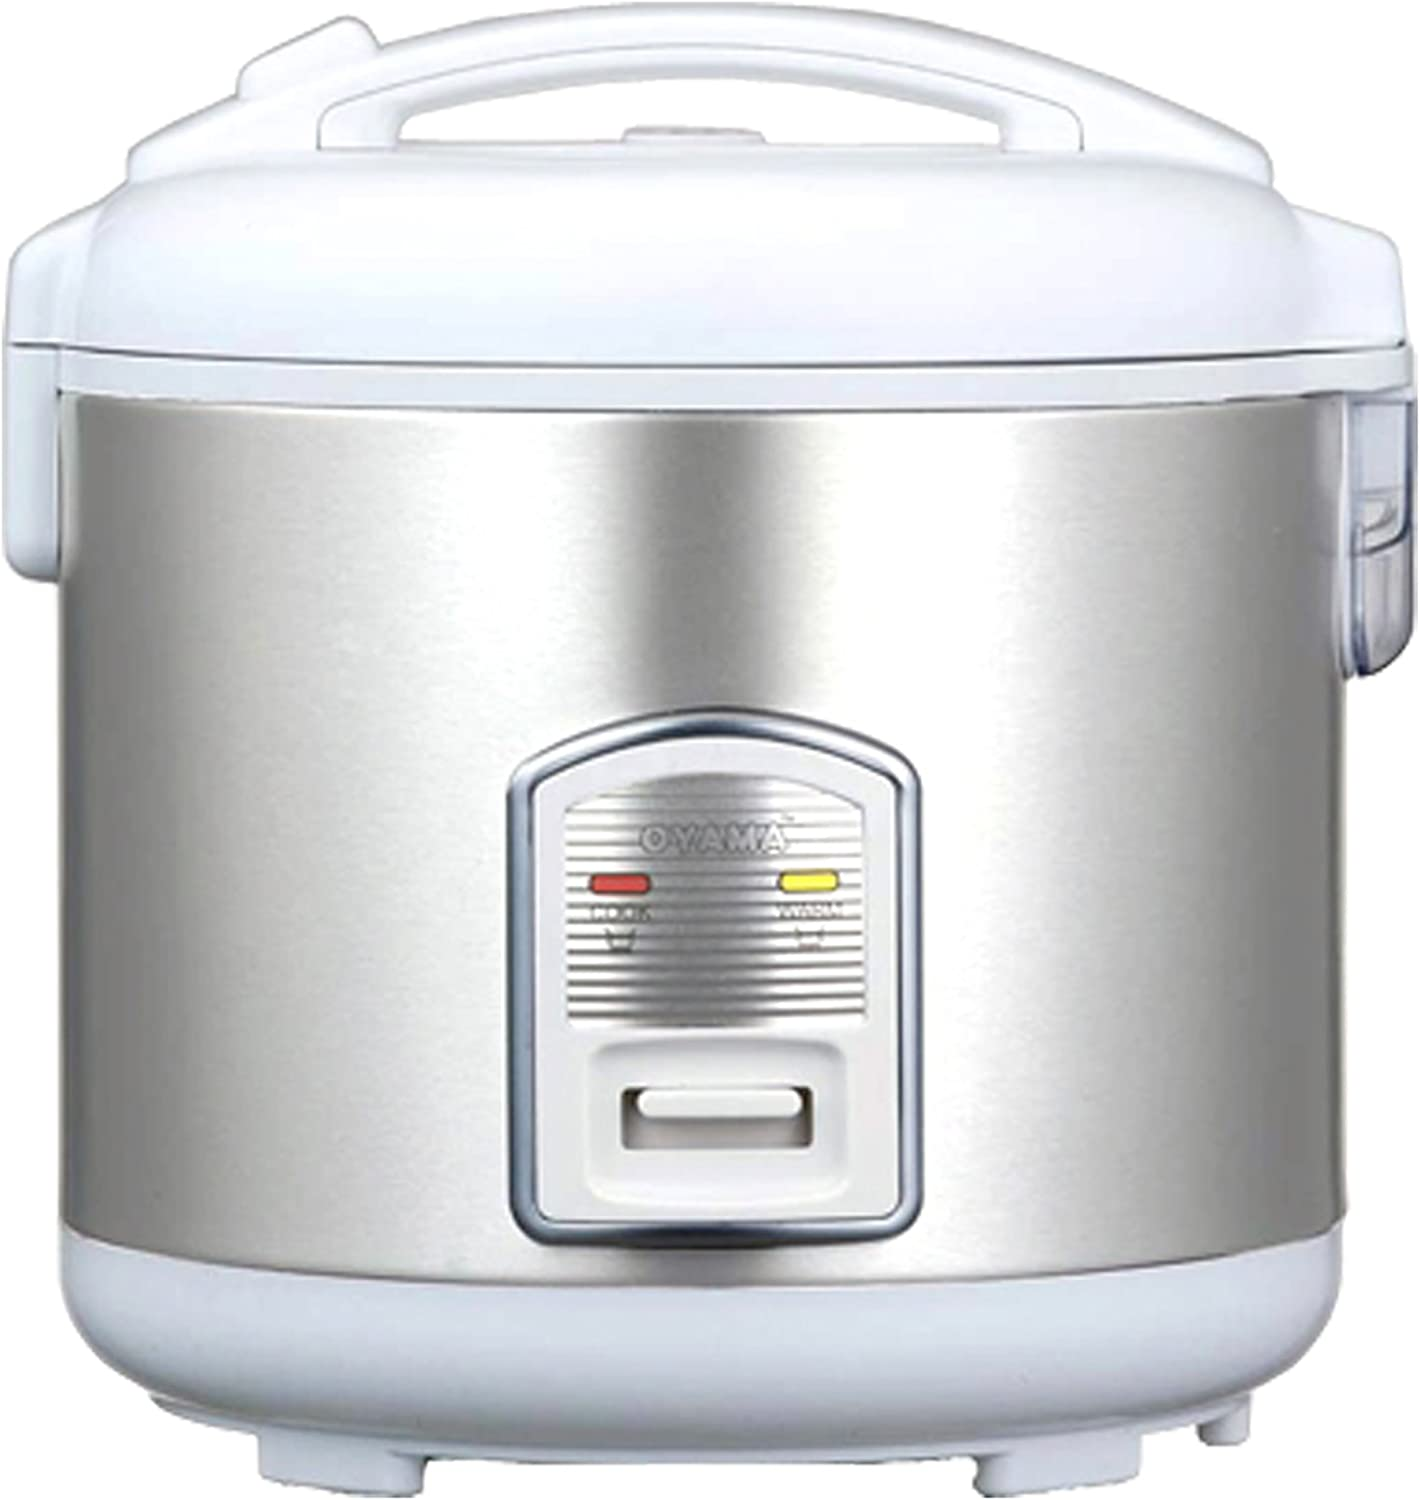 Oyama CFS-F12W 7 Cup Rice Cooker, Stainless White